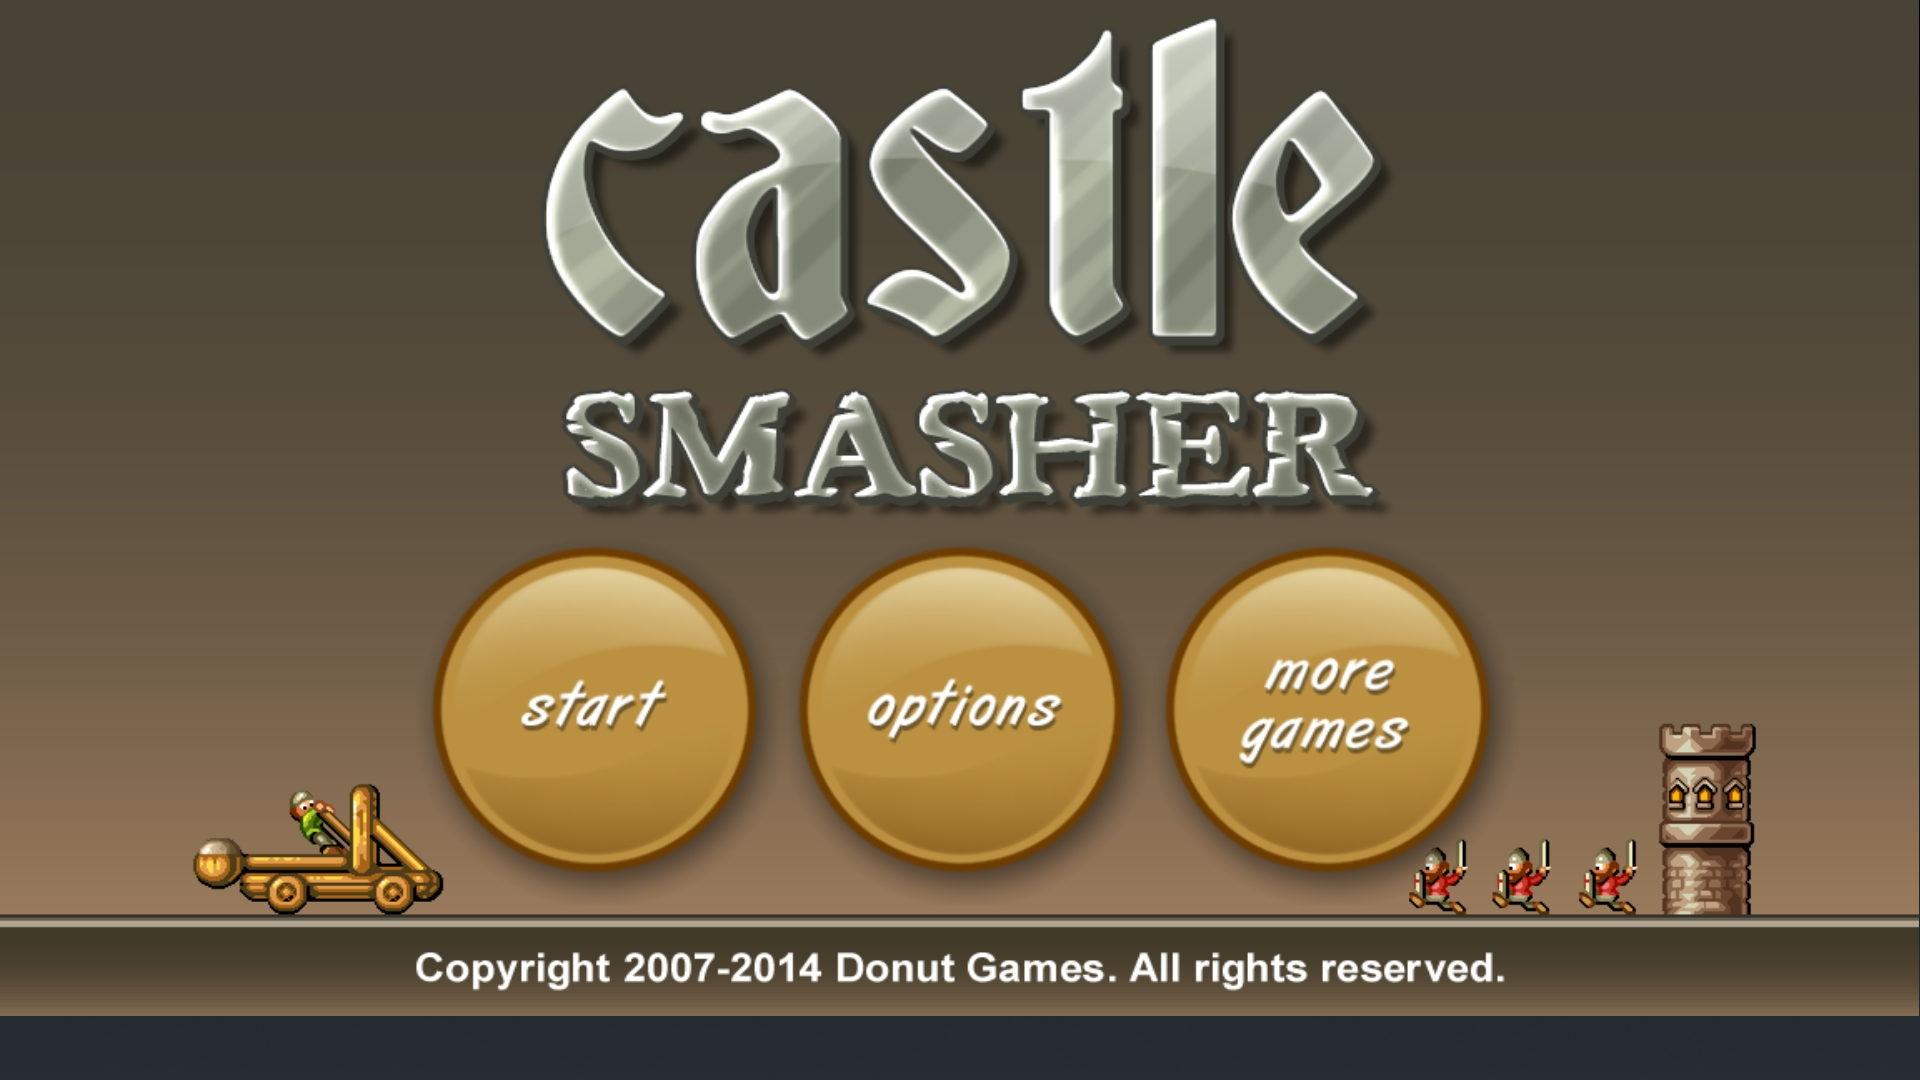 Bamse: Castle Smasher: Challenges: 23 Dray Is The Key (Android) 48 points on 2019-09-05 03:15:13